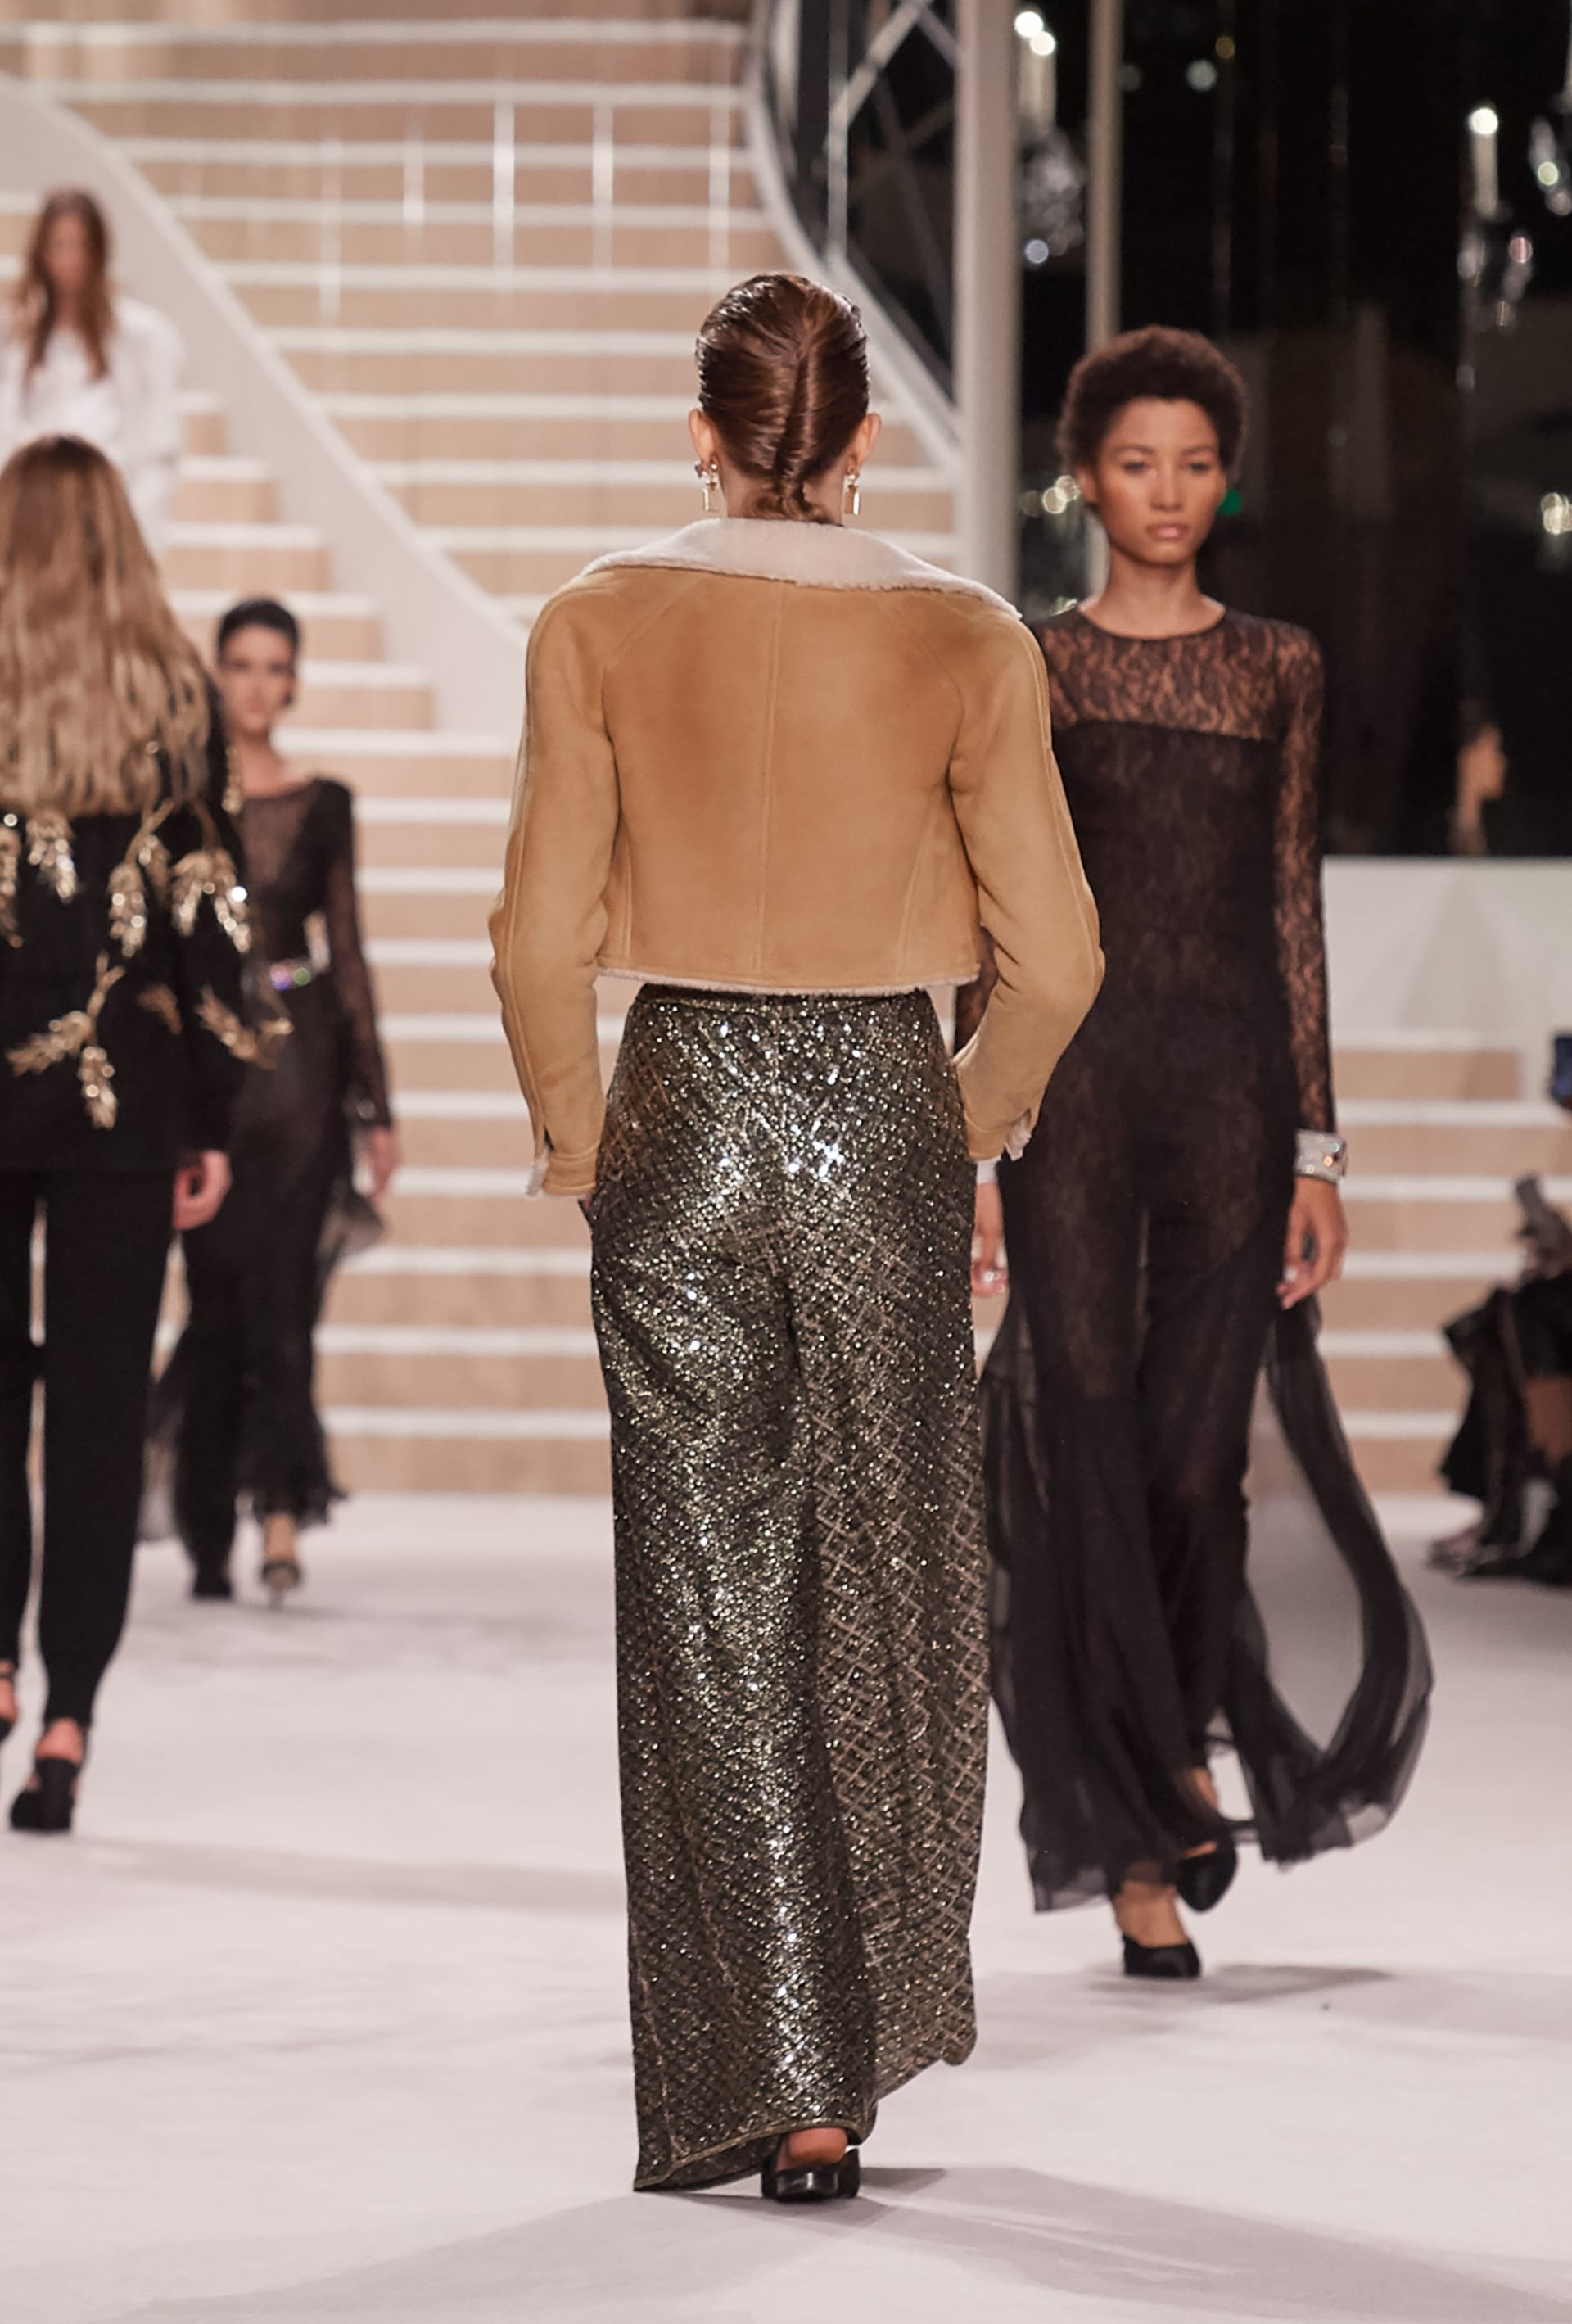 View 4 - Look 49 - Métiers d'Art 2019/20 - see full sized version